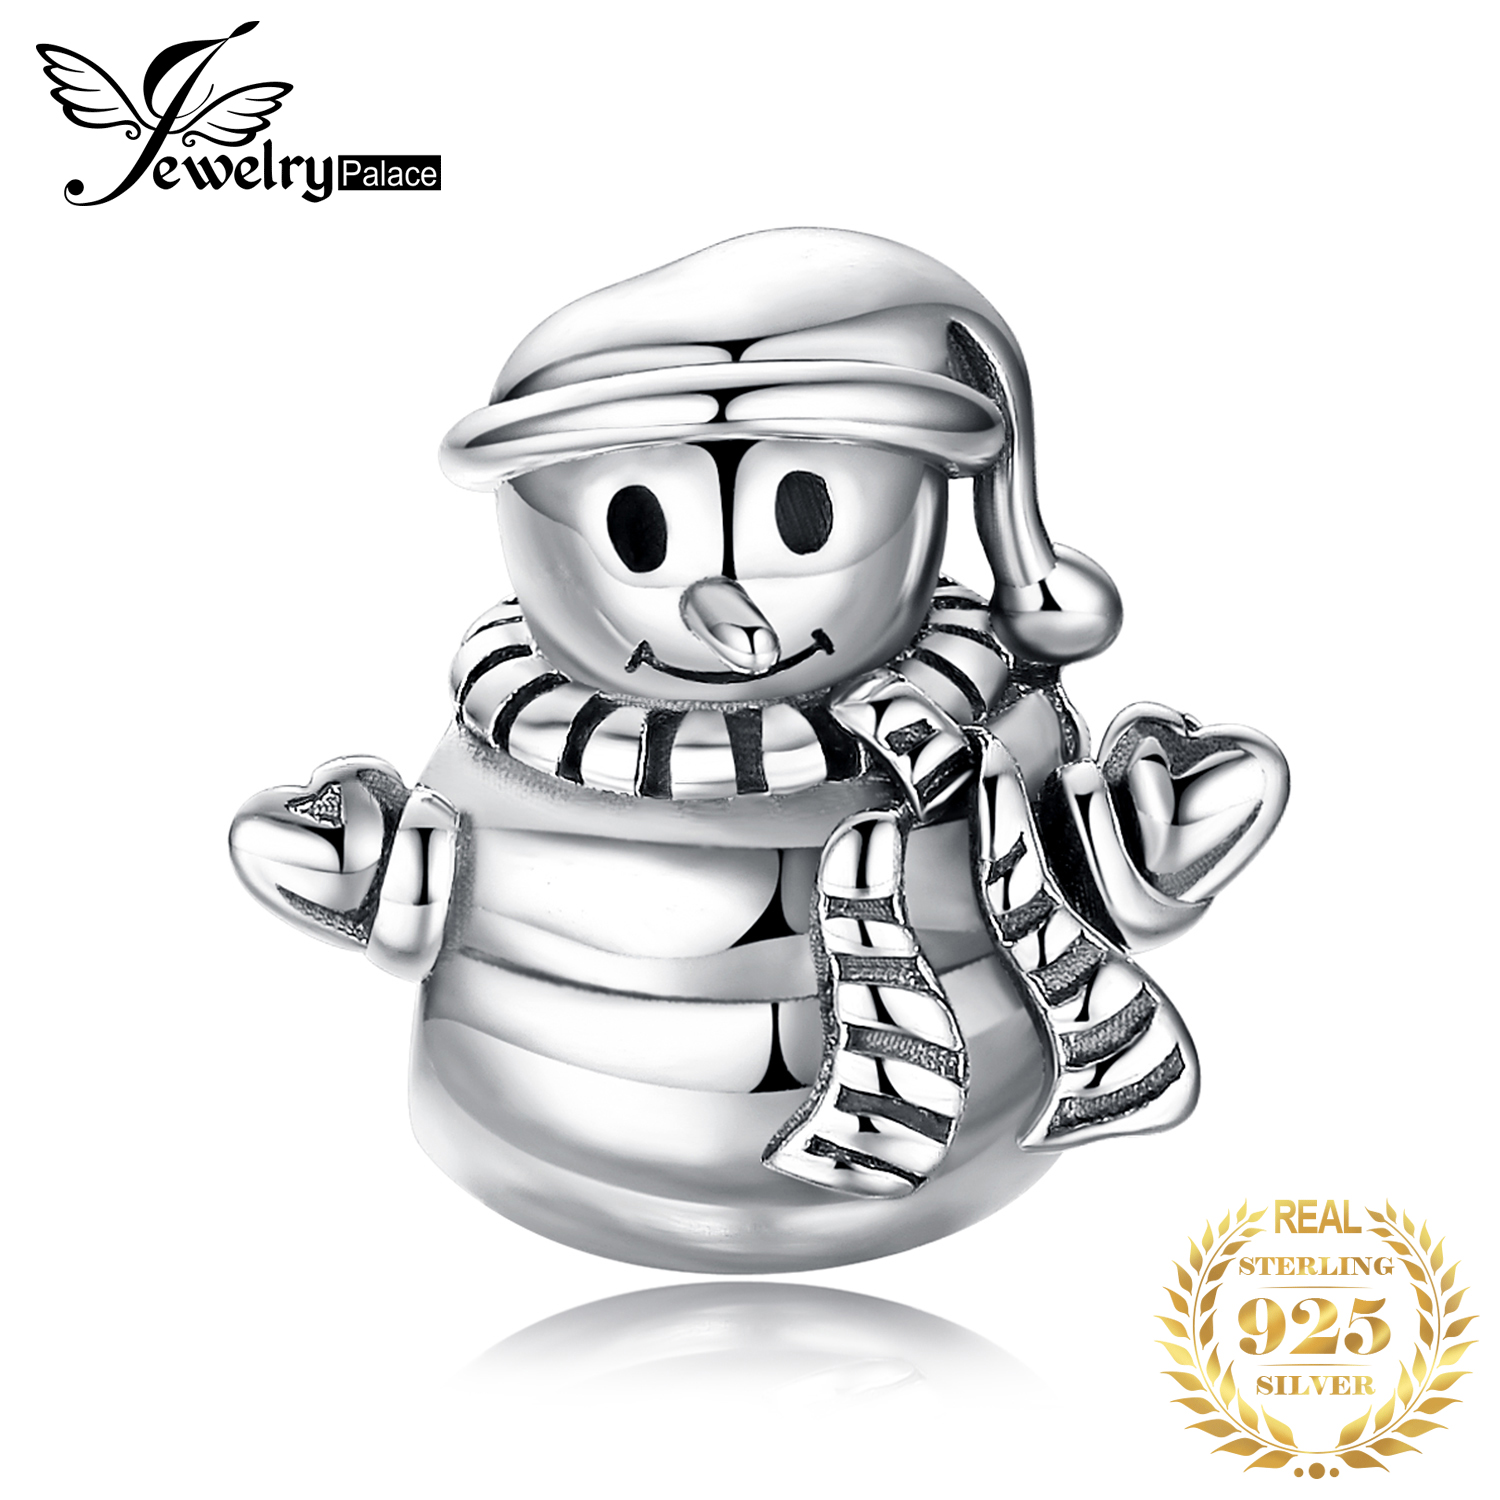 JewelryPalace Snowman 925 Sterling Silver Beads Charms Silver 925 Original For Bracelet Silver 925 Original Beads Jewelry Making